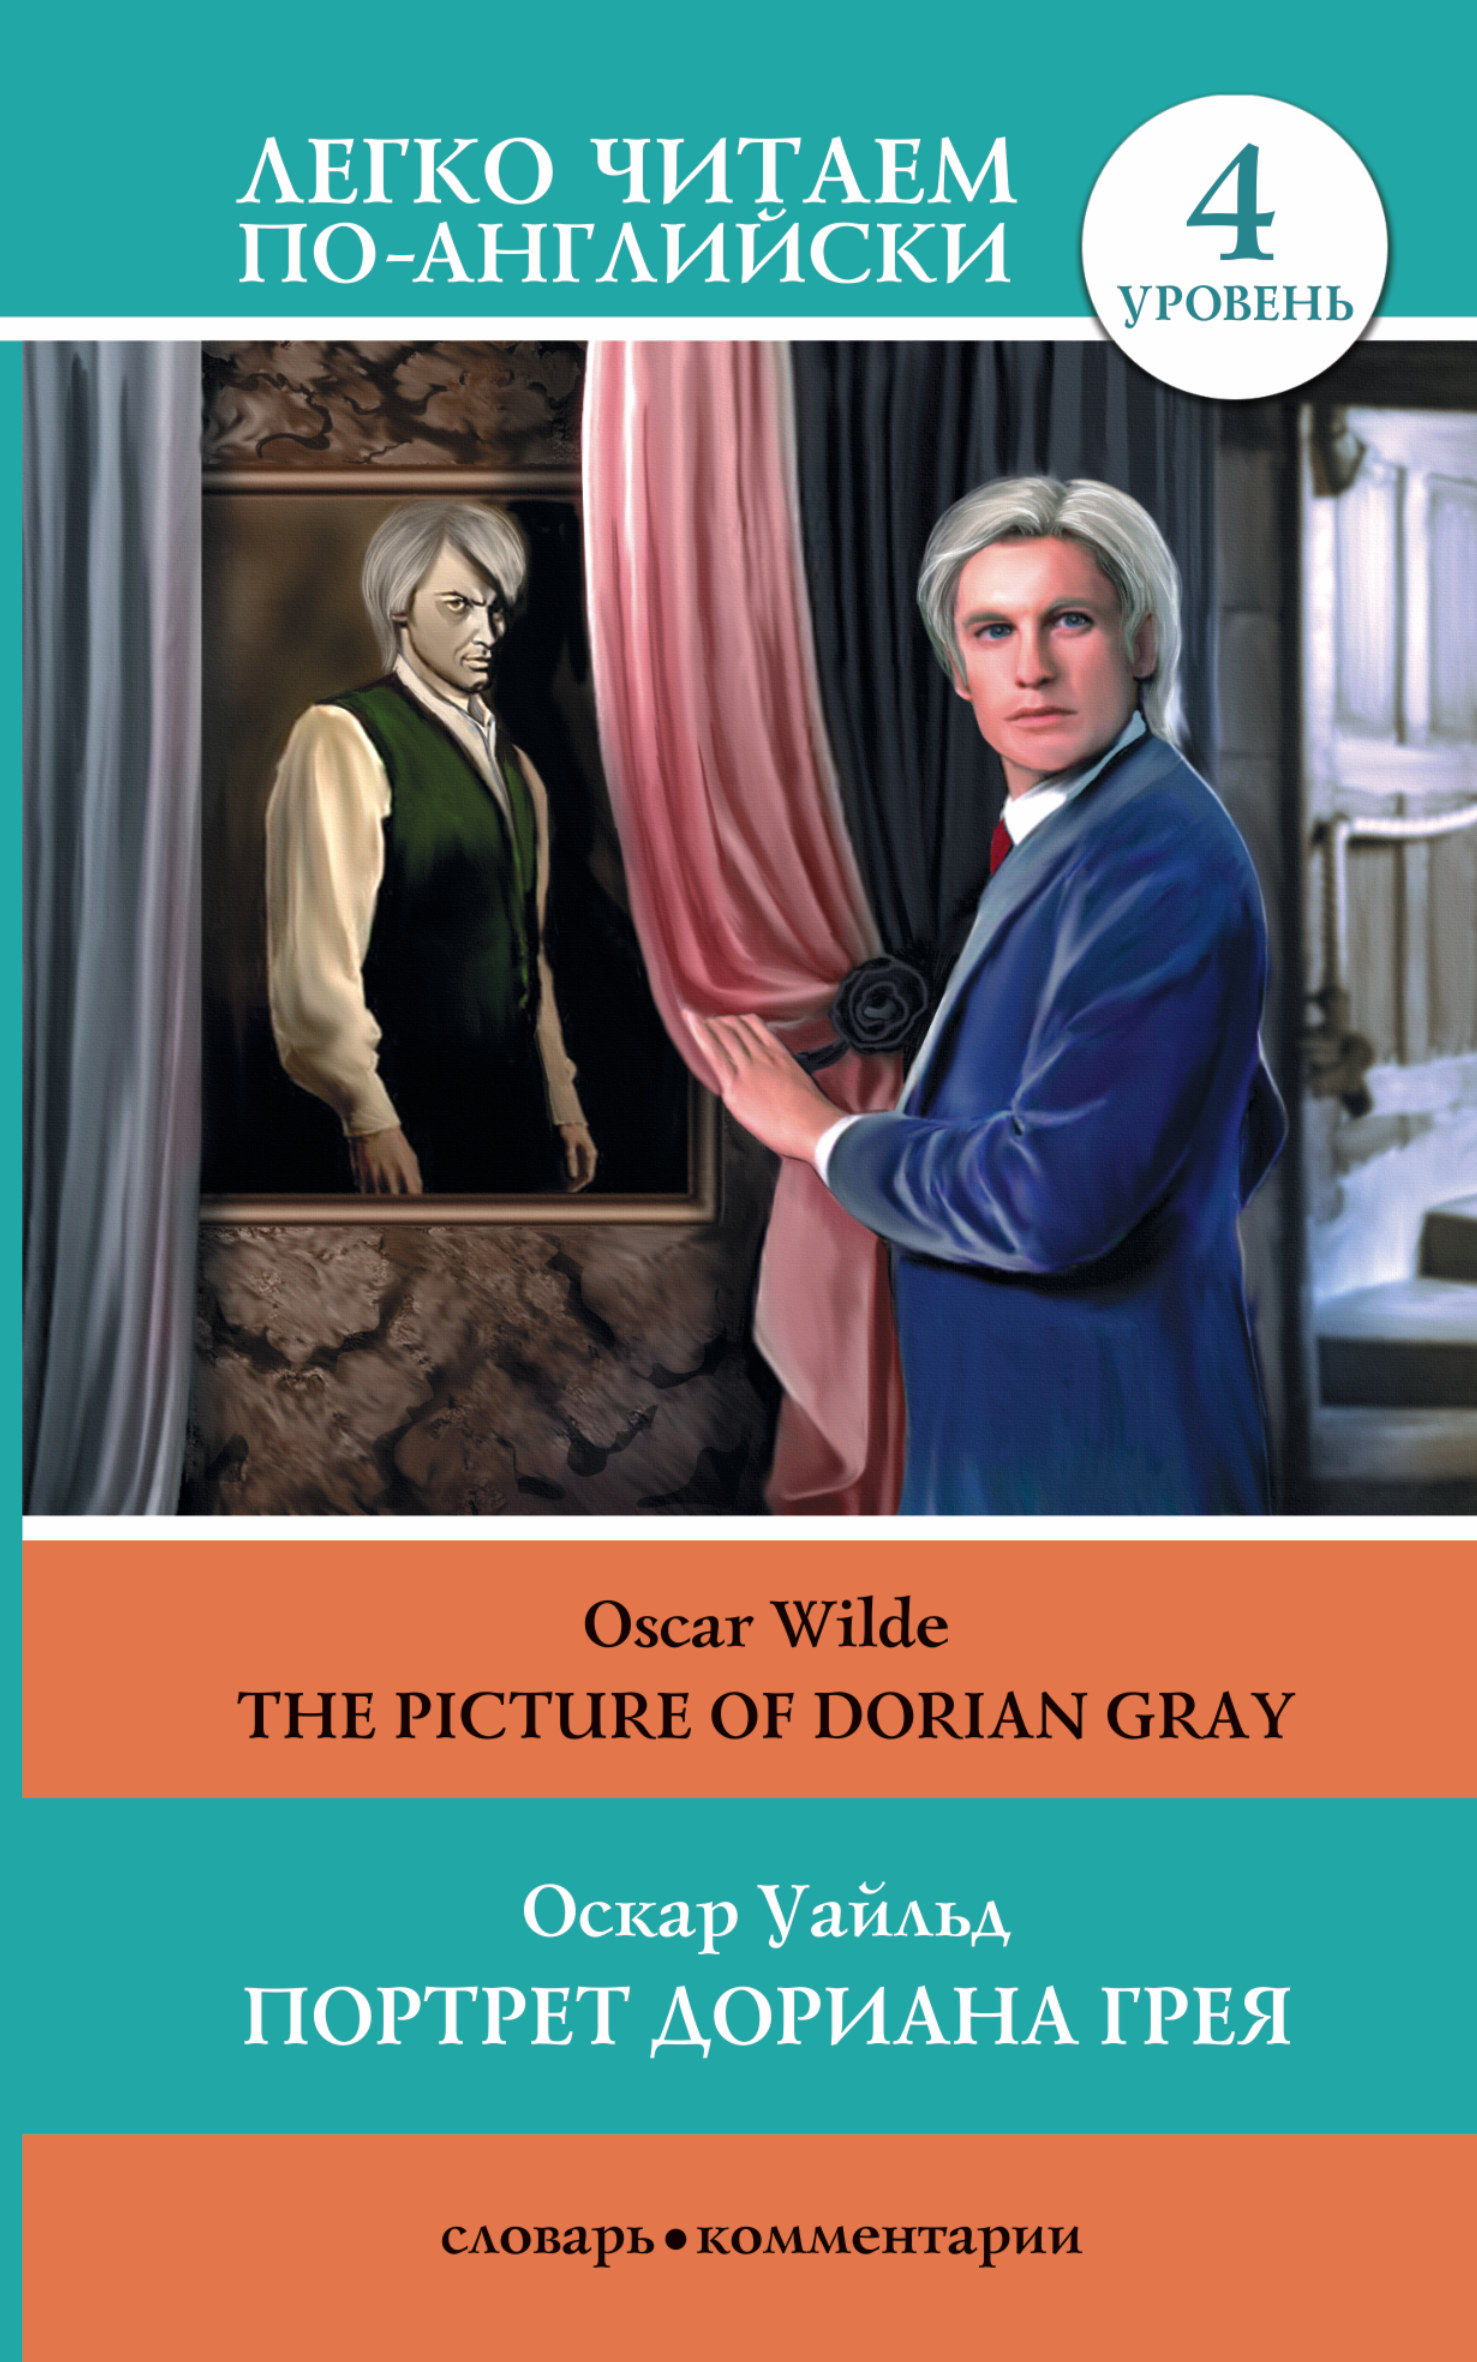 Уайльд О. Портрет Дориана Грея = The Picture of Dorian Gray уайлд оскар портрет дориана грея the picture of dorian gray